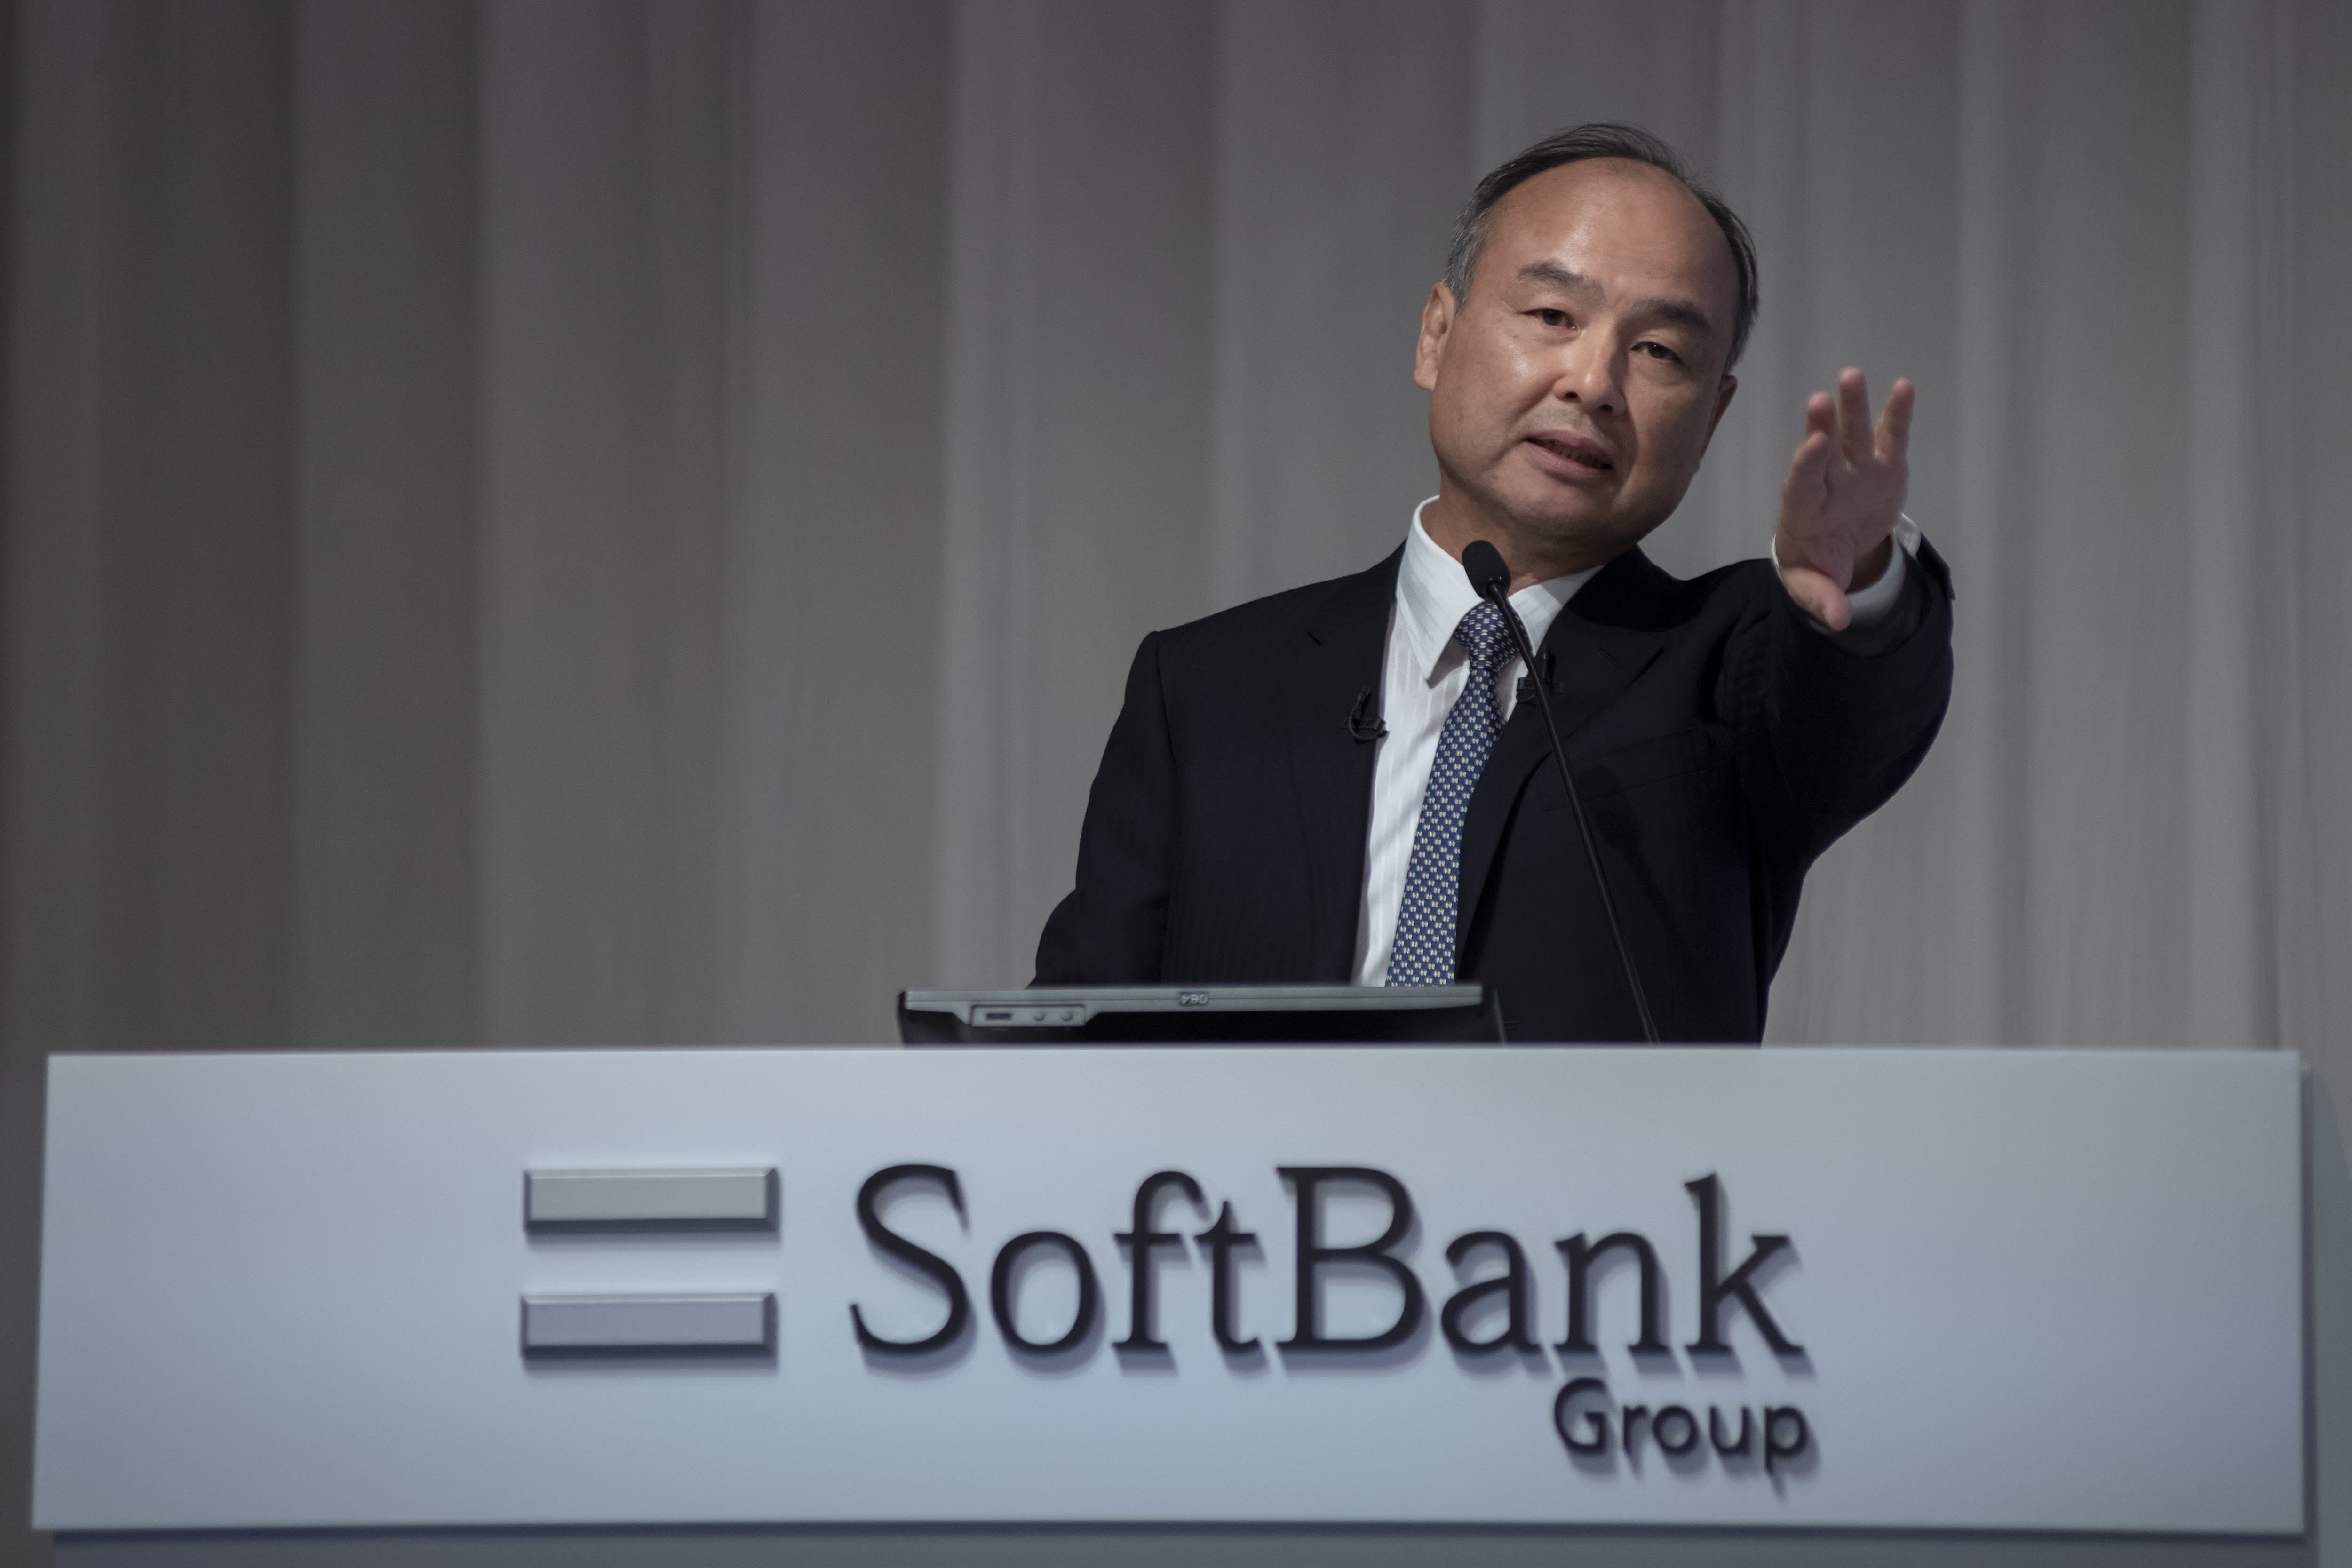 Two experts break down SoftBank's first earnings loss in 14 years